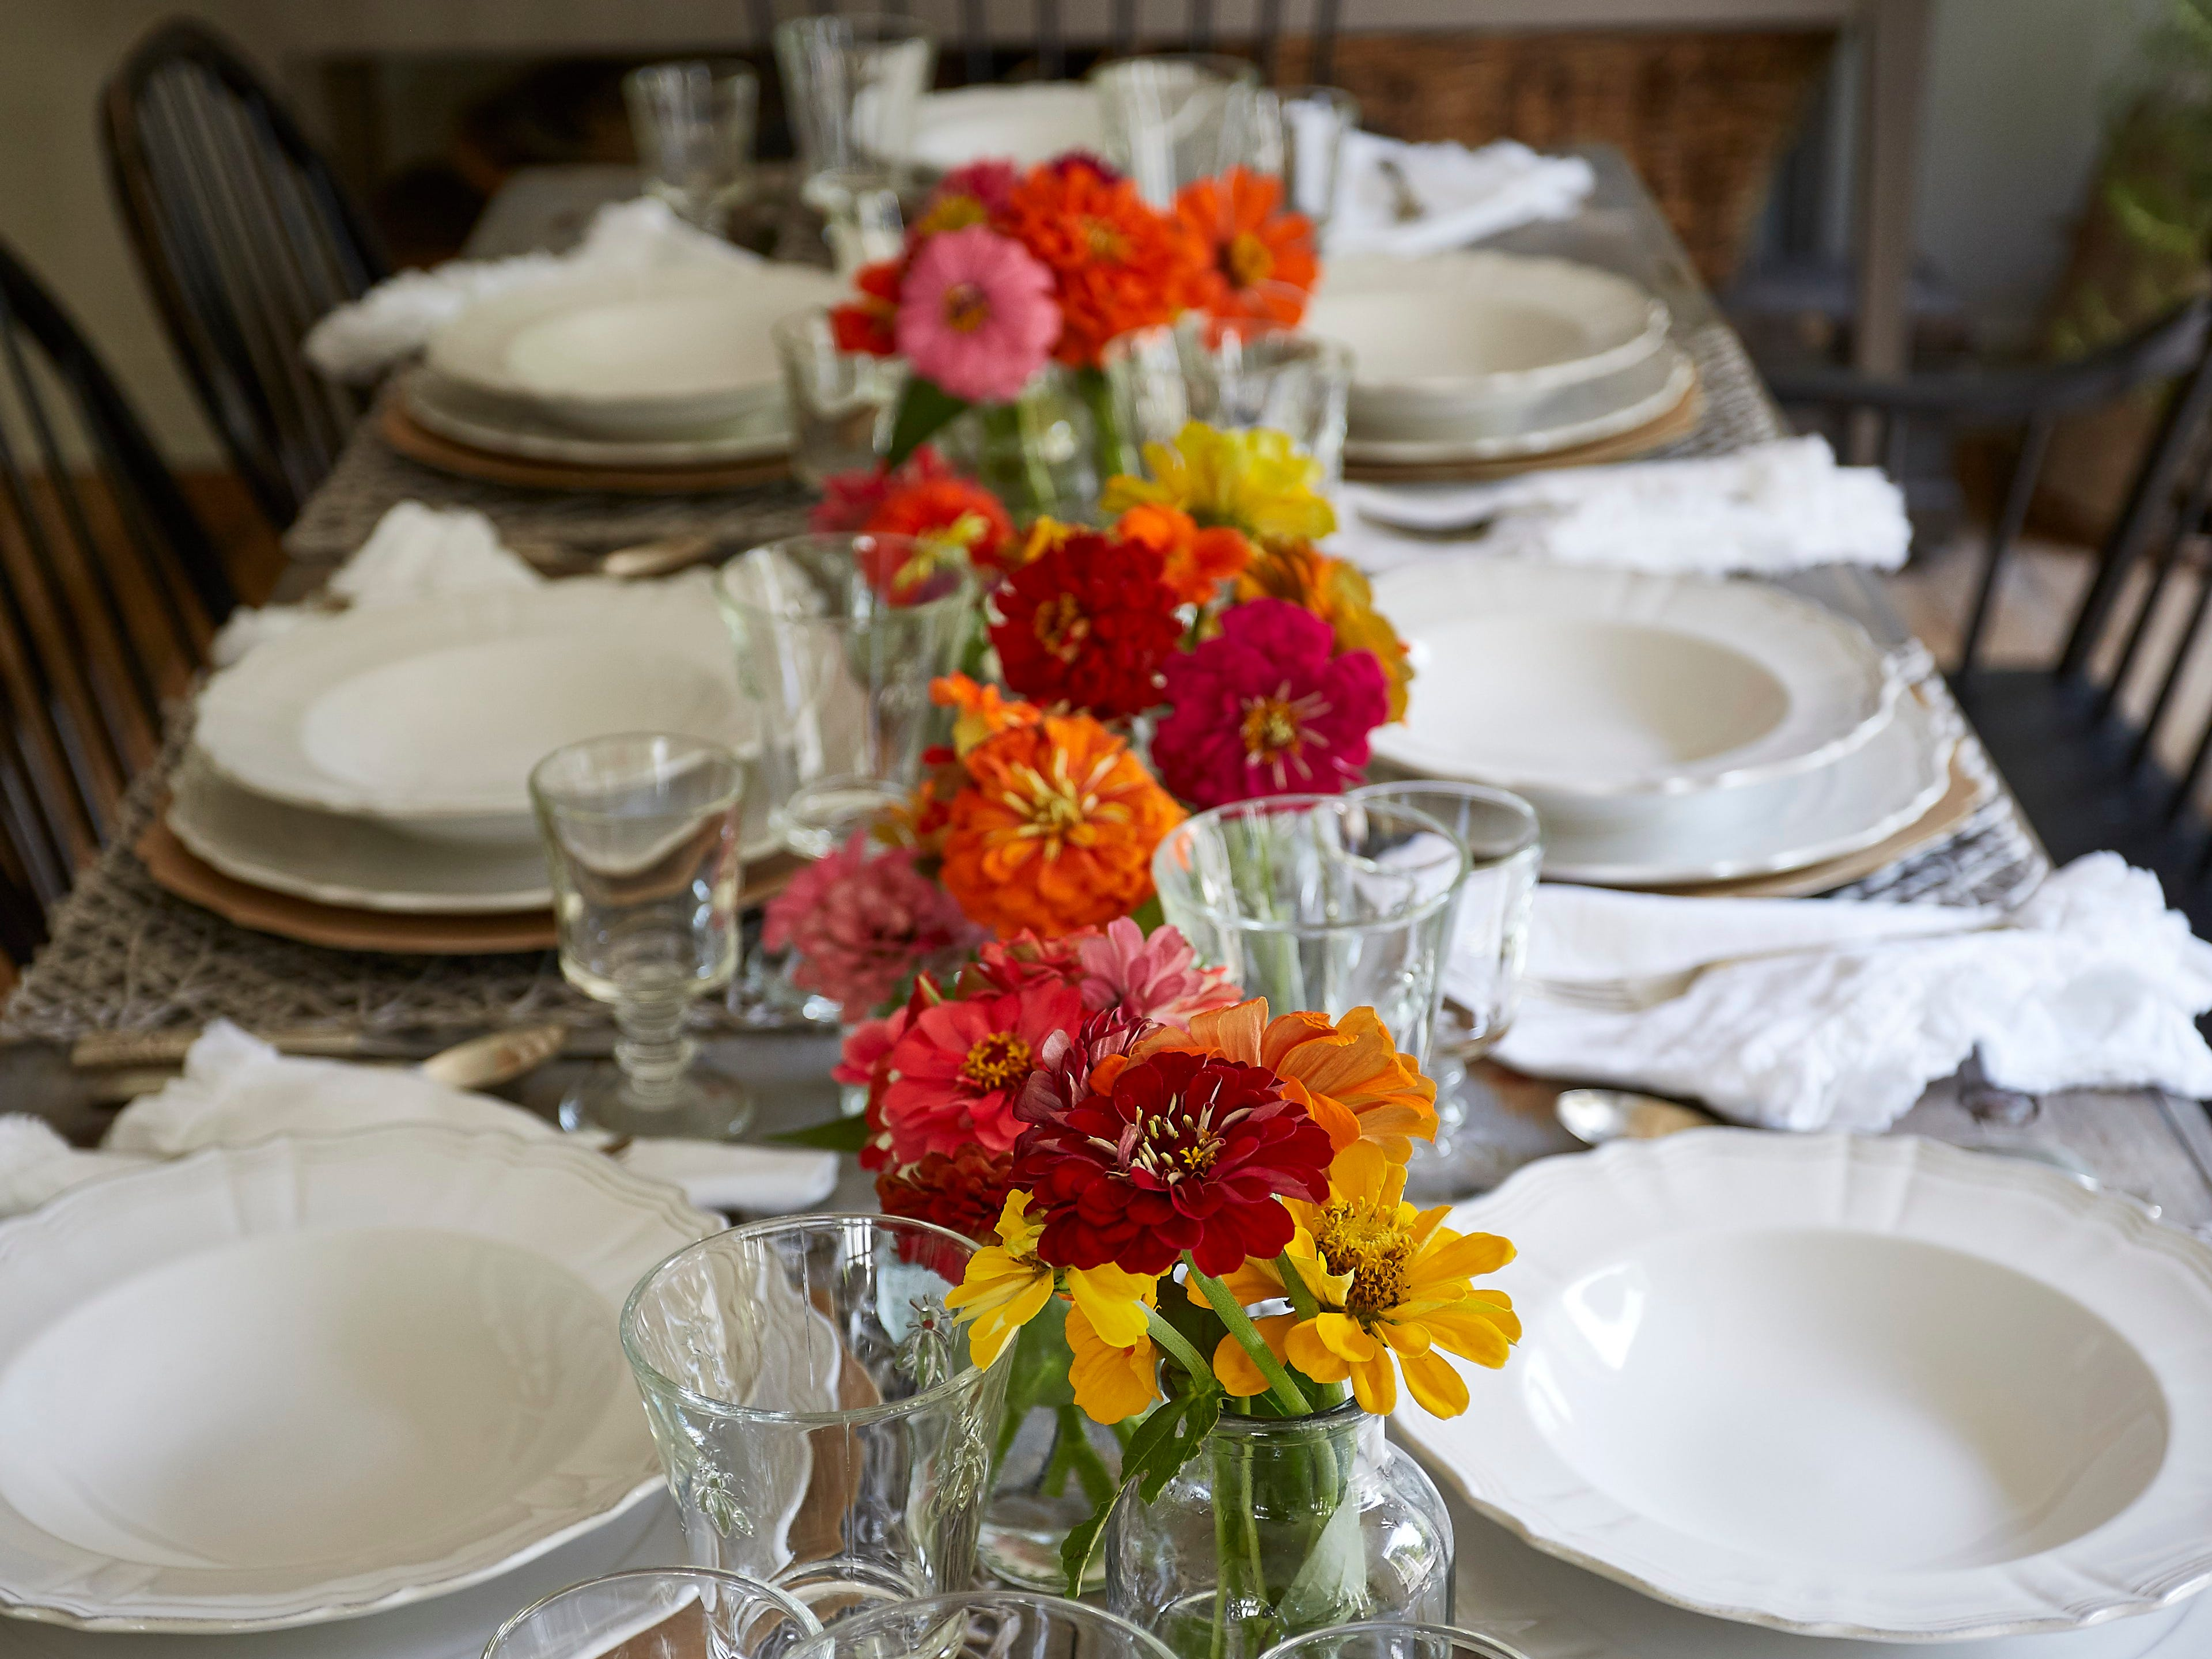 Changing the linen and flatware, adding chargers and placemats and swapping fauna for flora can give the same table a very different look.